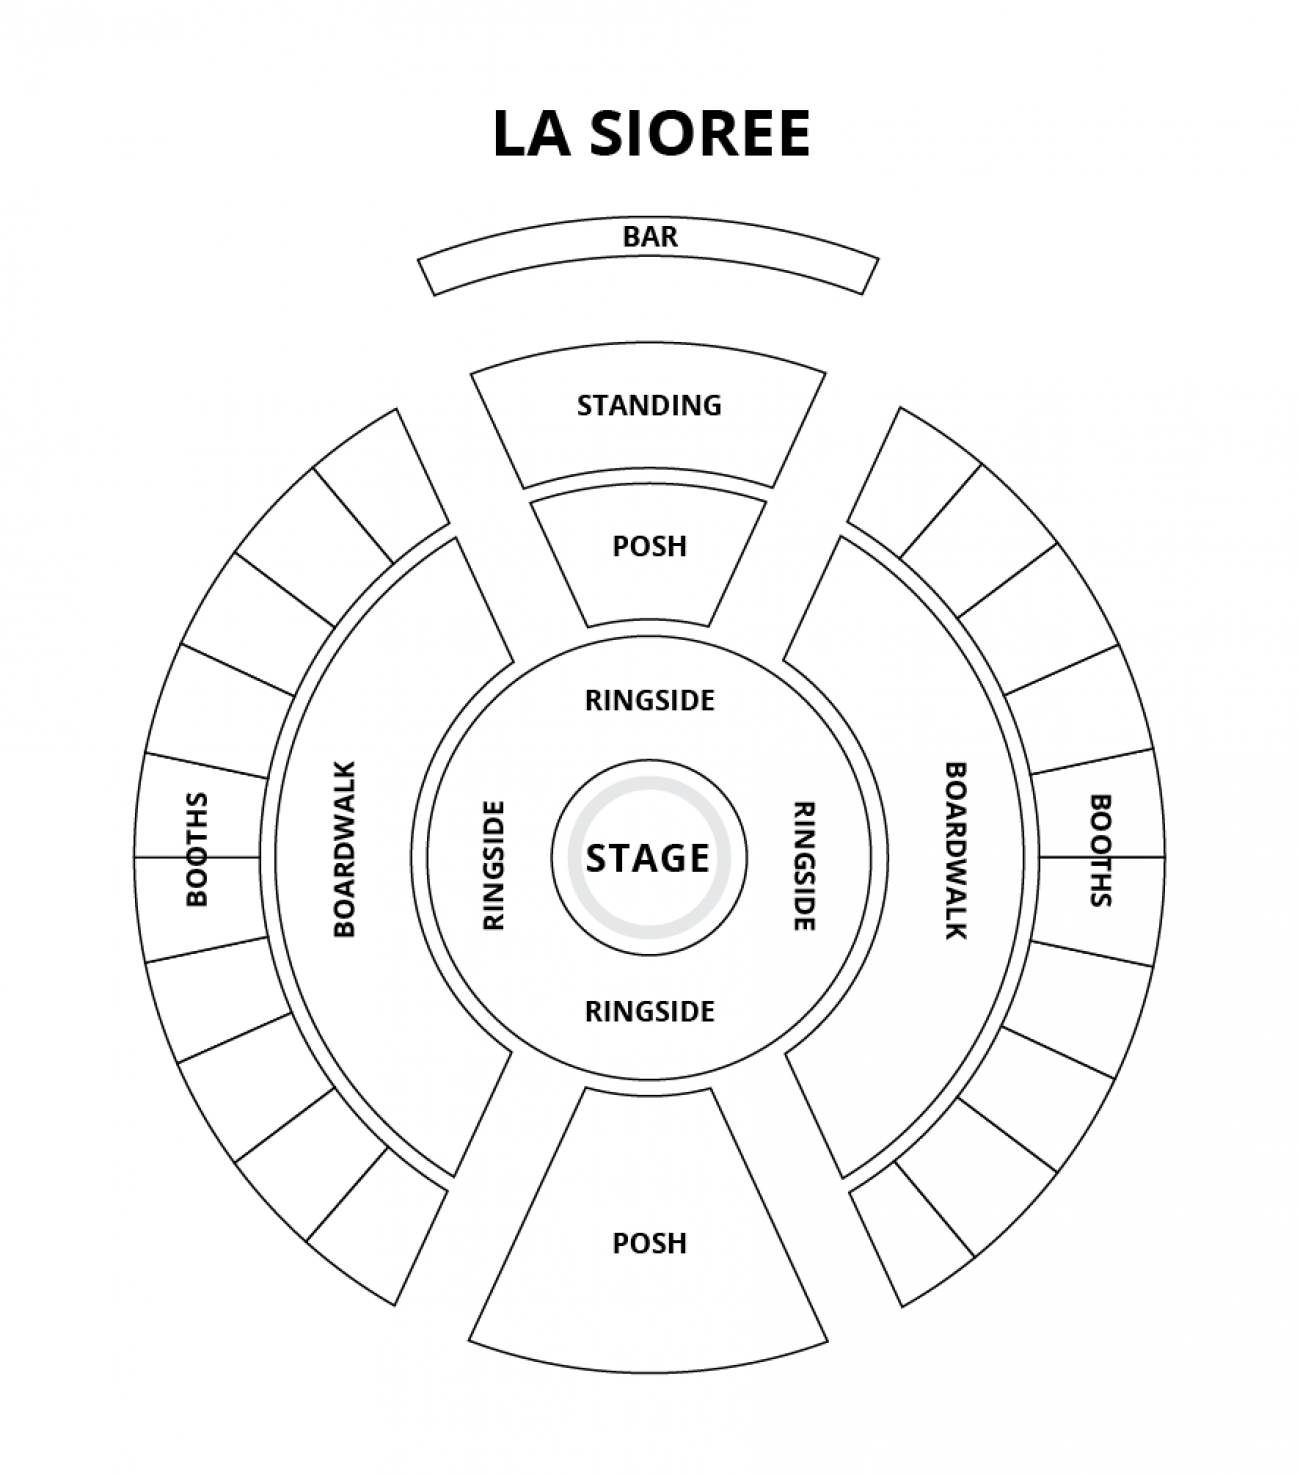 The Spiegeltent Seating plan